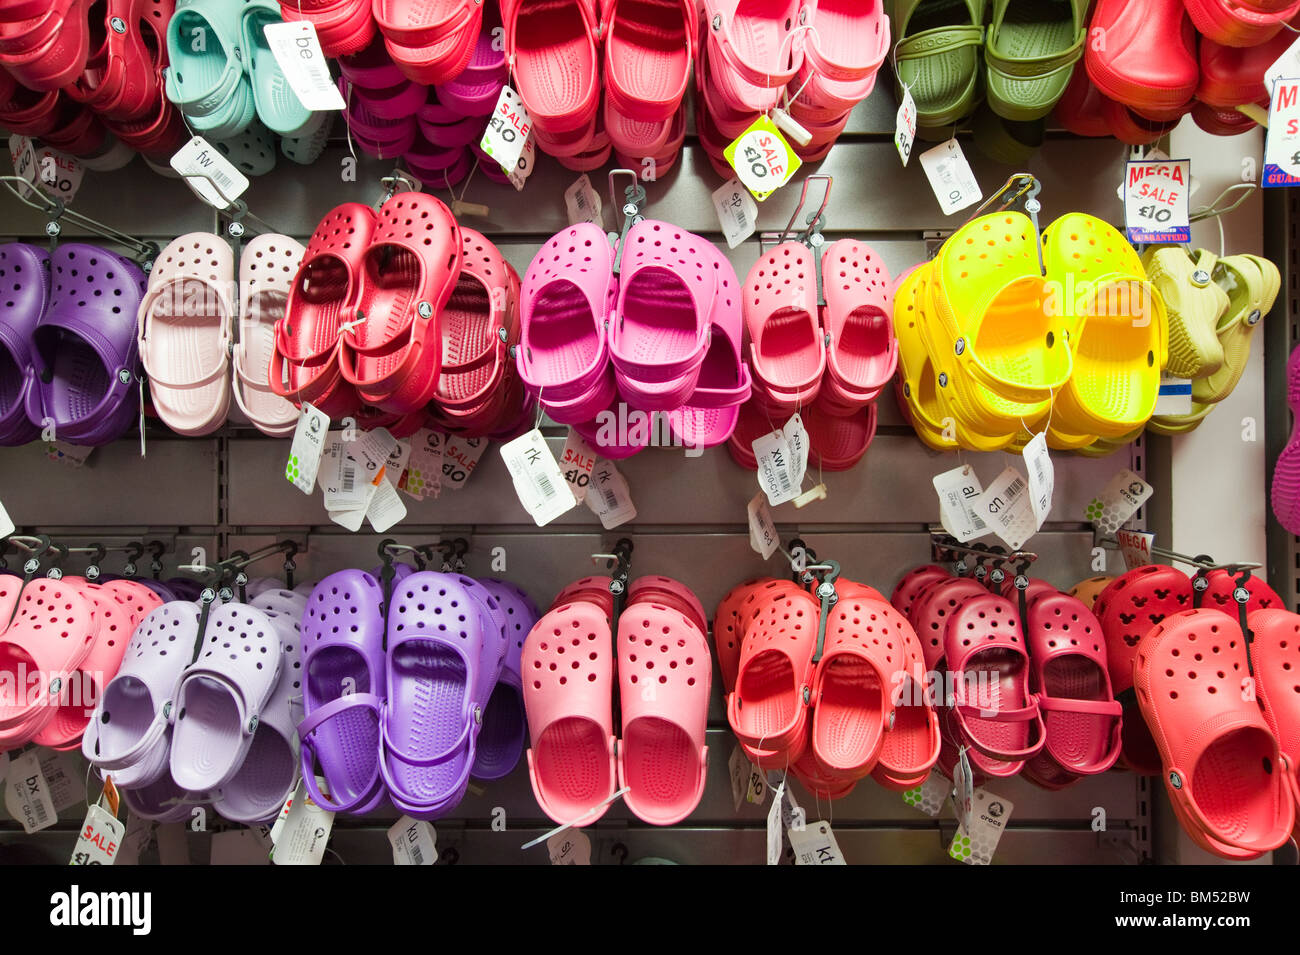 Stock Imágenes Croc's amp; Sandals Crocs Shoes De qwvaSX